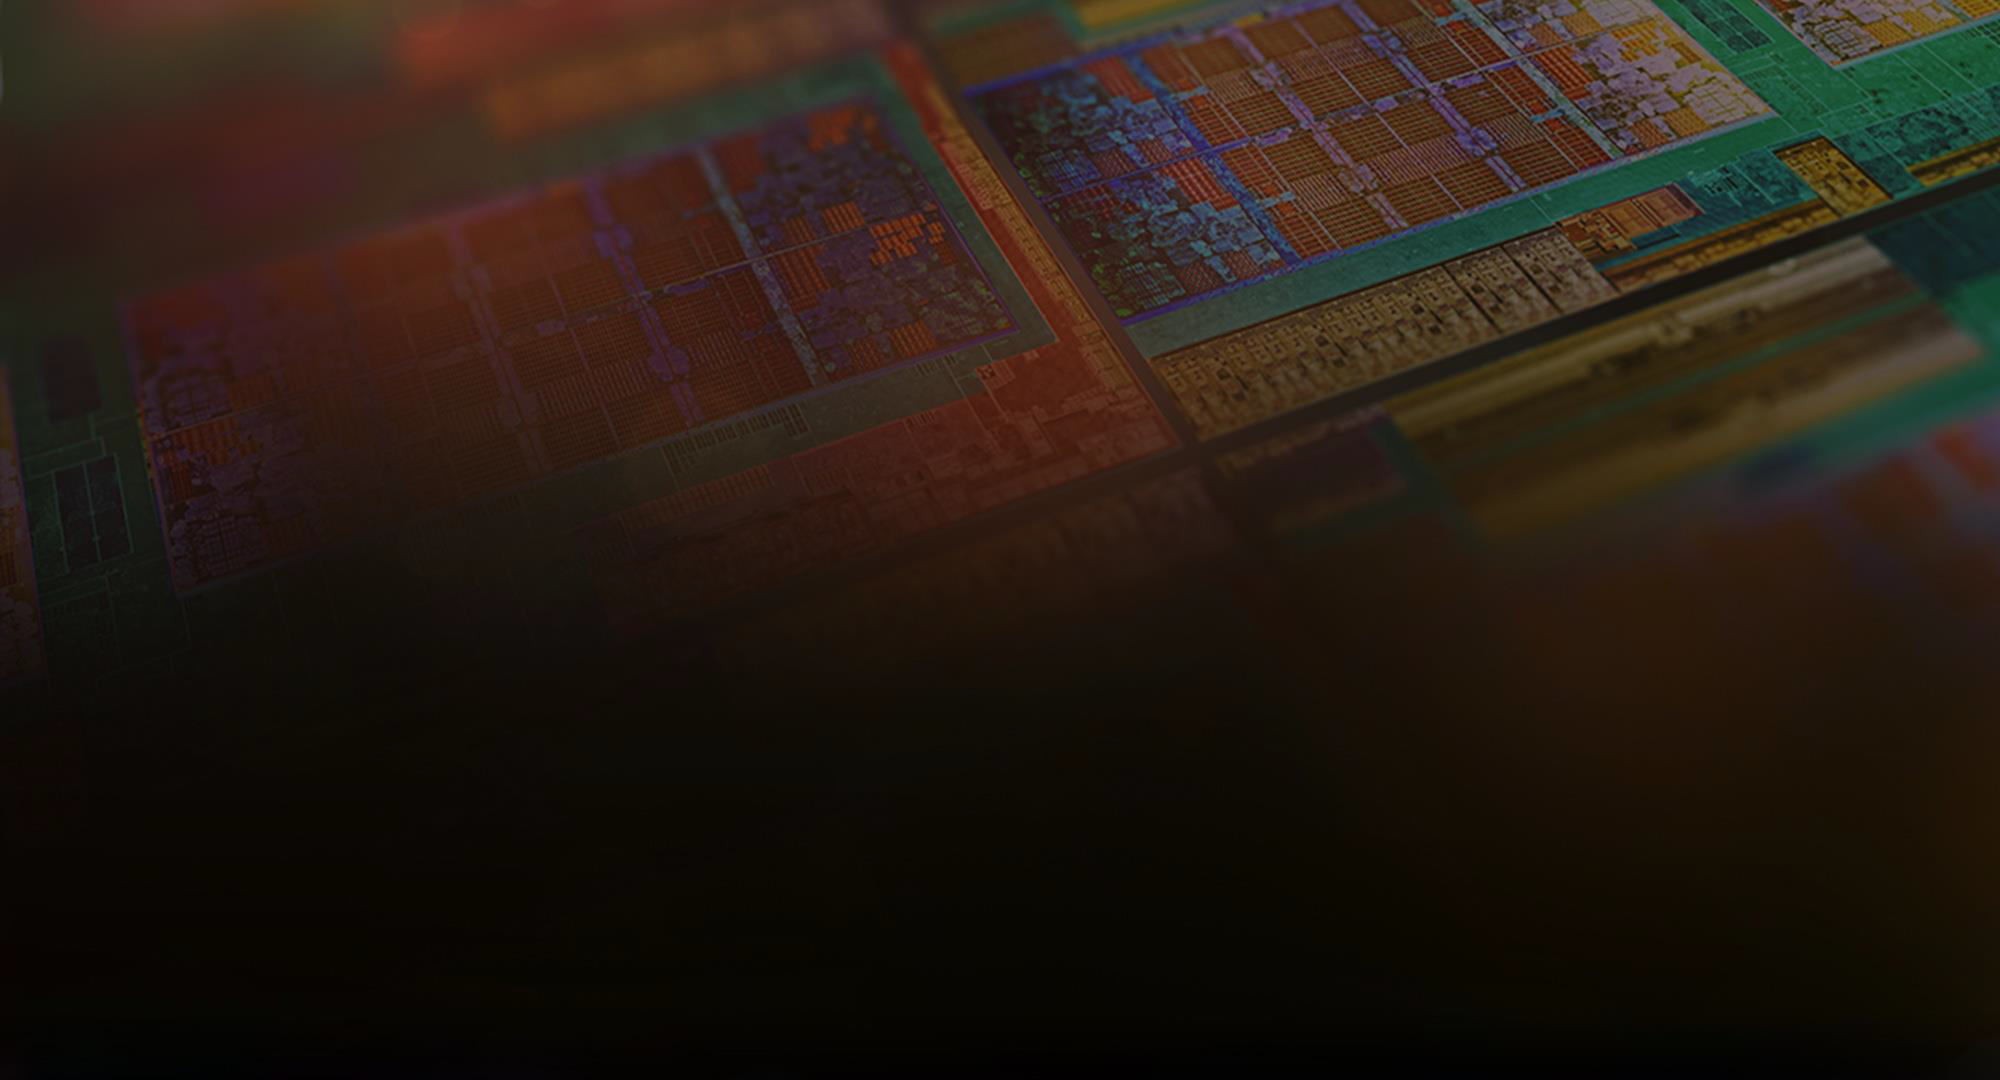 AMD Zen 2 With 7nm and Zen 3 With 7nm+ CPU Architectures